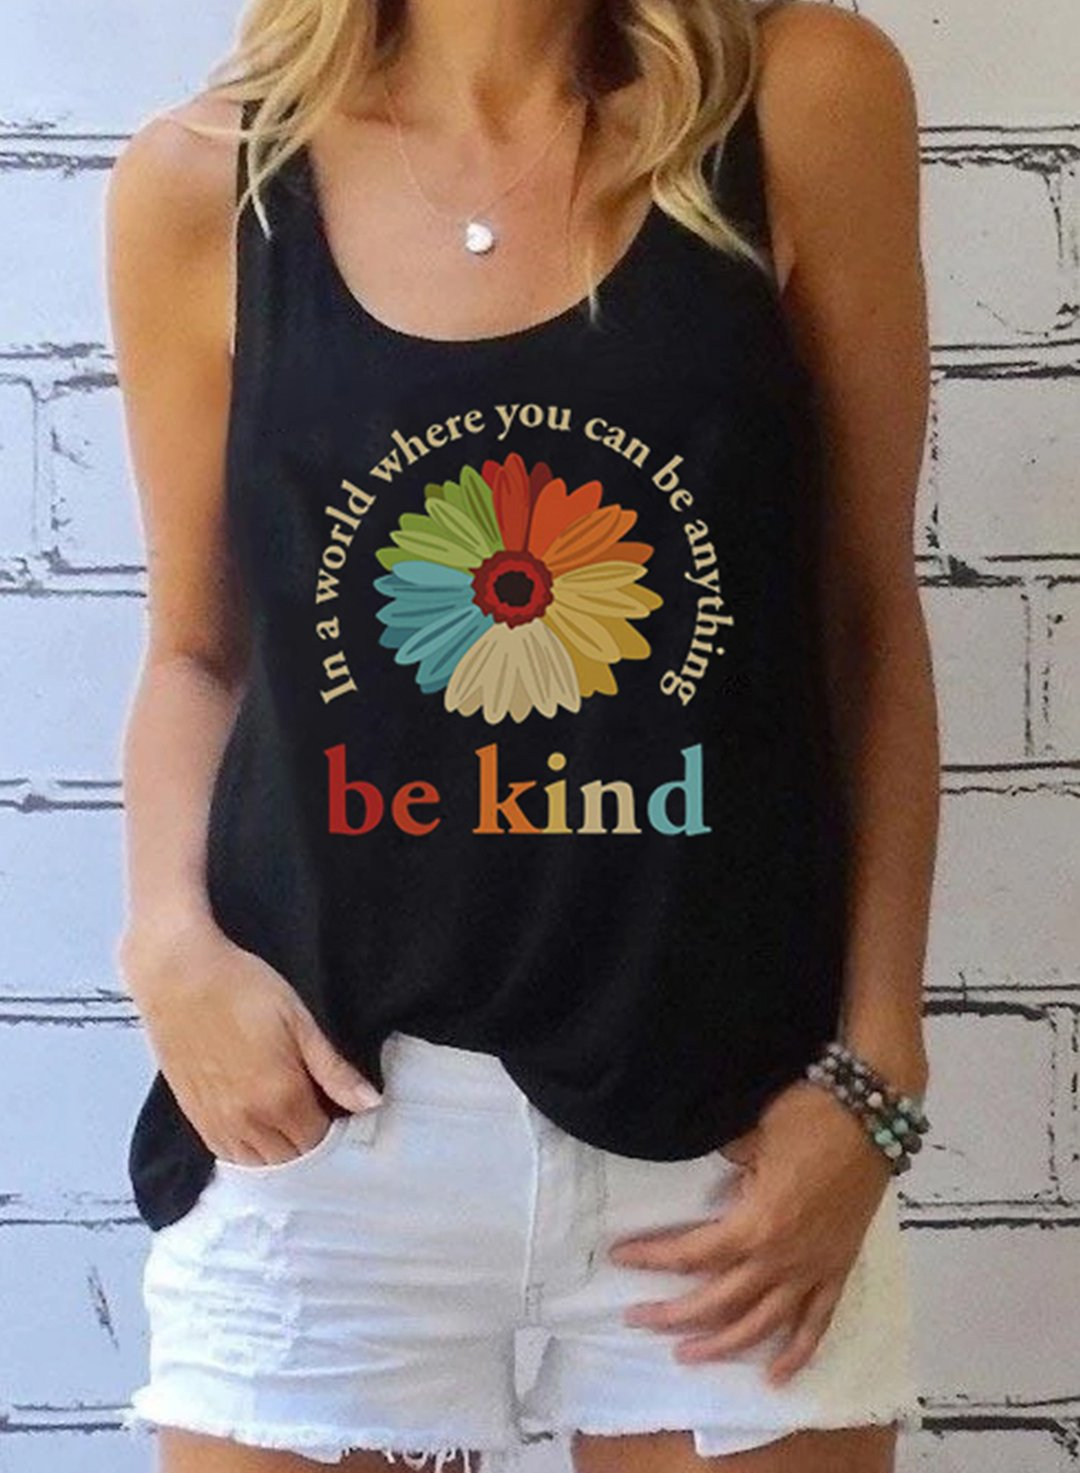 Black Women's Tank Tops Sunflower Slogan Tank Tops LC2526477-2